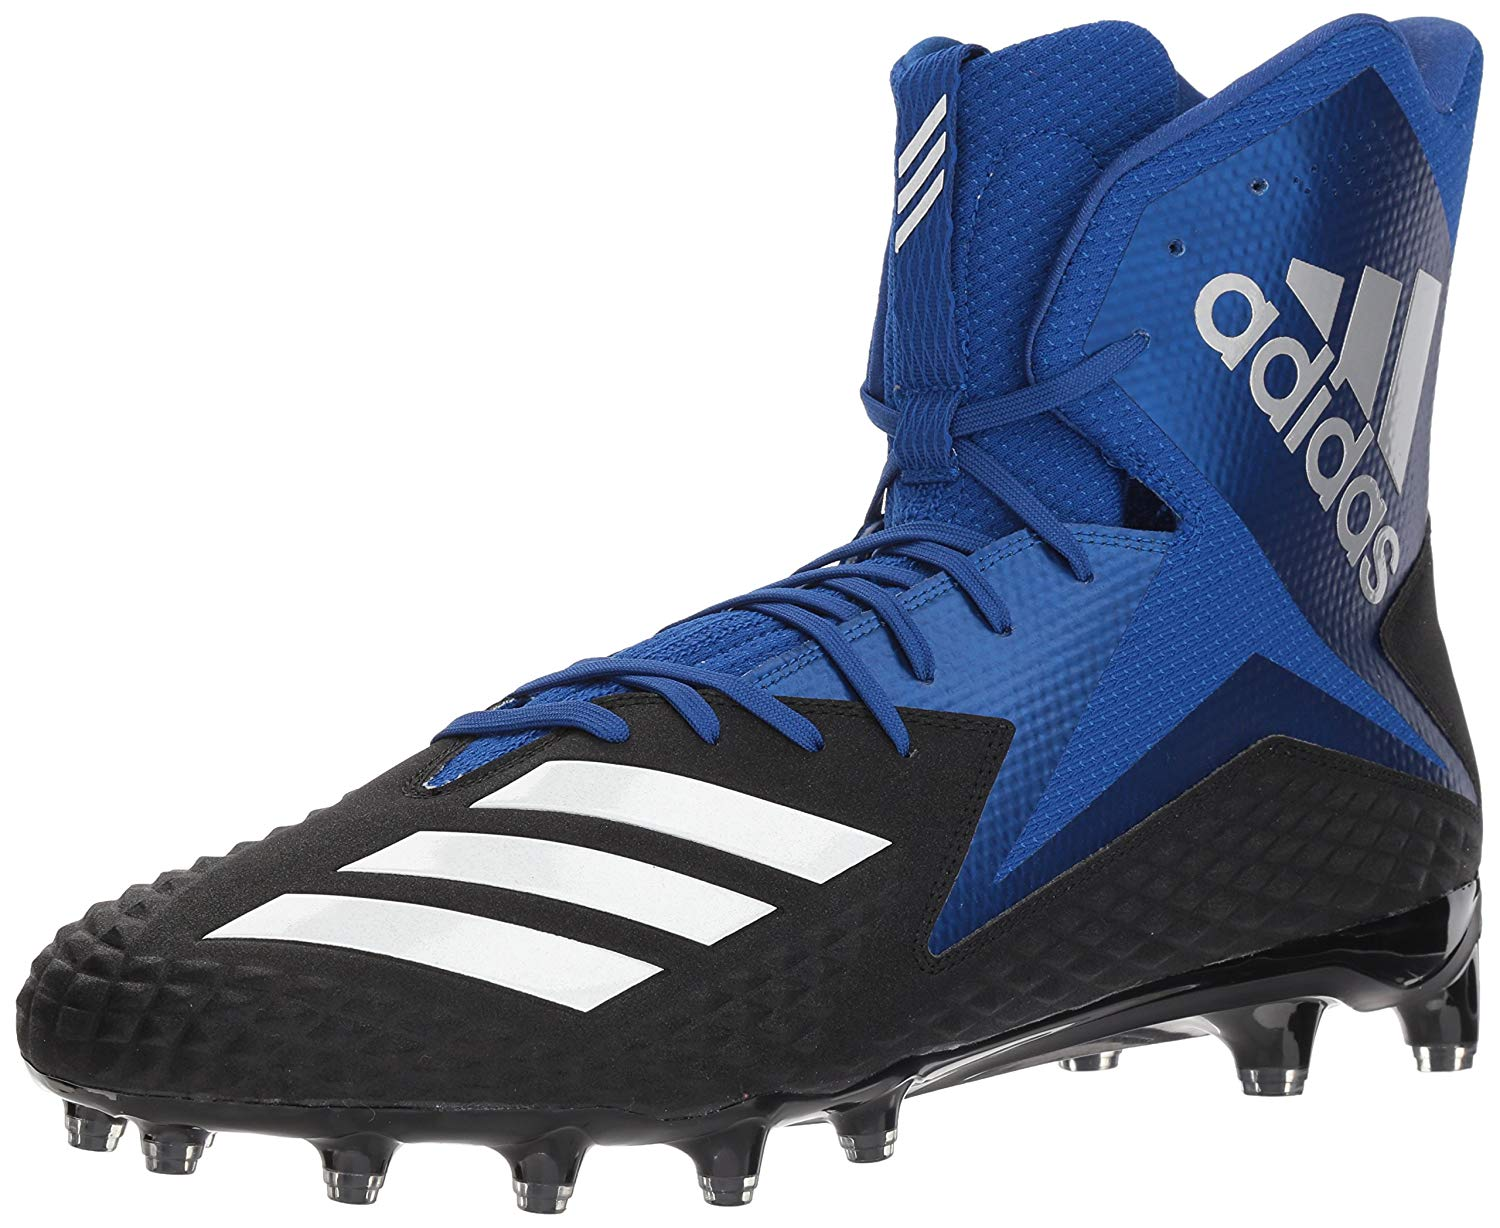 c8b7585f1 Best Lineman Football Cleats For You in 2019 - EliteGear Reviews